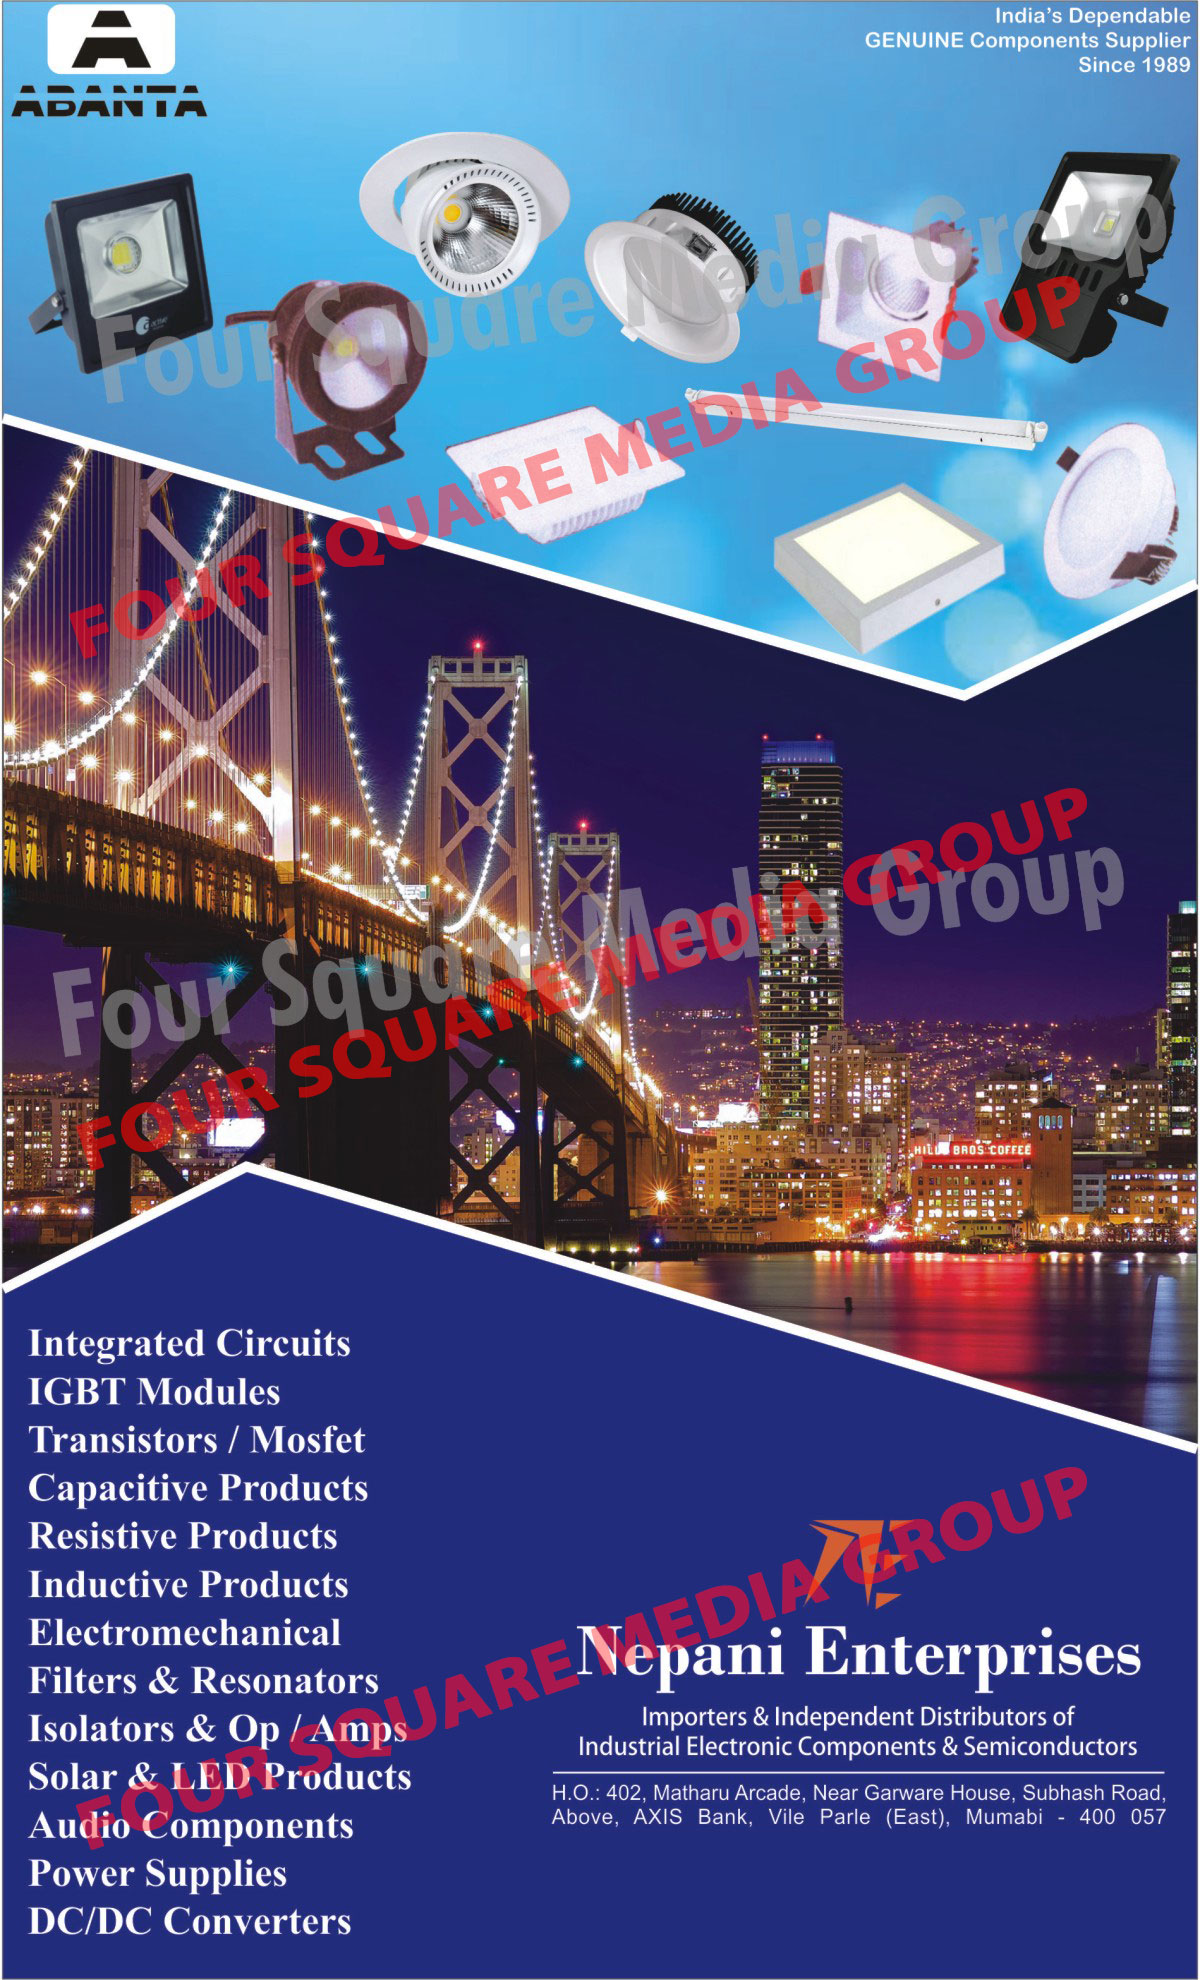 Industrial Electronic Components, Semiconductors, Integrated Circuits, IGBT Modules, Transistors, Mosfets, Capacitive Products, Resistive Products, Inductive Products, Electromechanical Products, Filters, Resonators, Isolators, OP, AMPS, Solar Products, LED Products, Audio Components, Power Supply, DC to DC Converters,